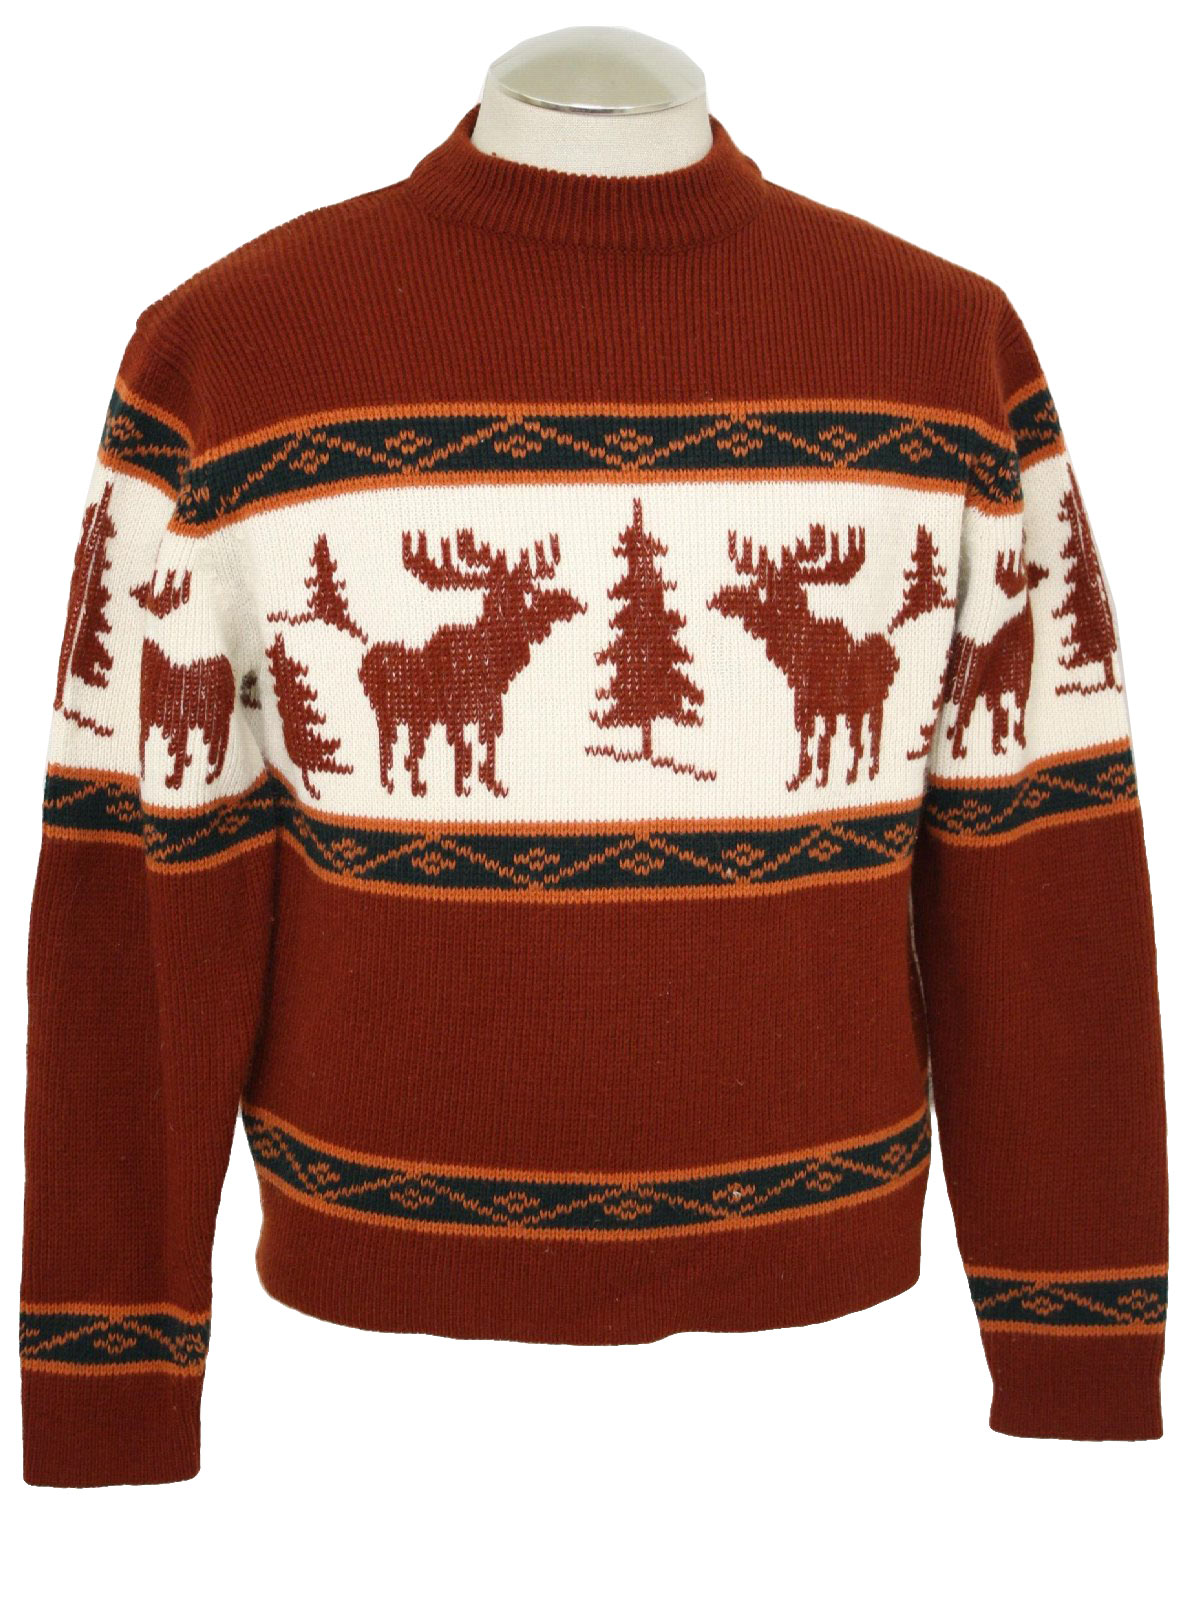 1970 S Retro Mens Christmas Theme Ski Sweater 70s Macys